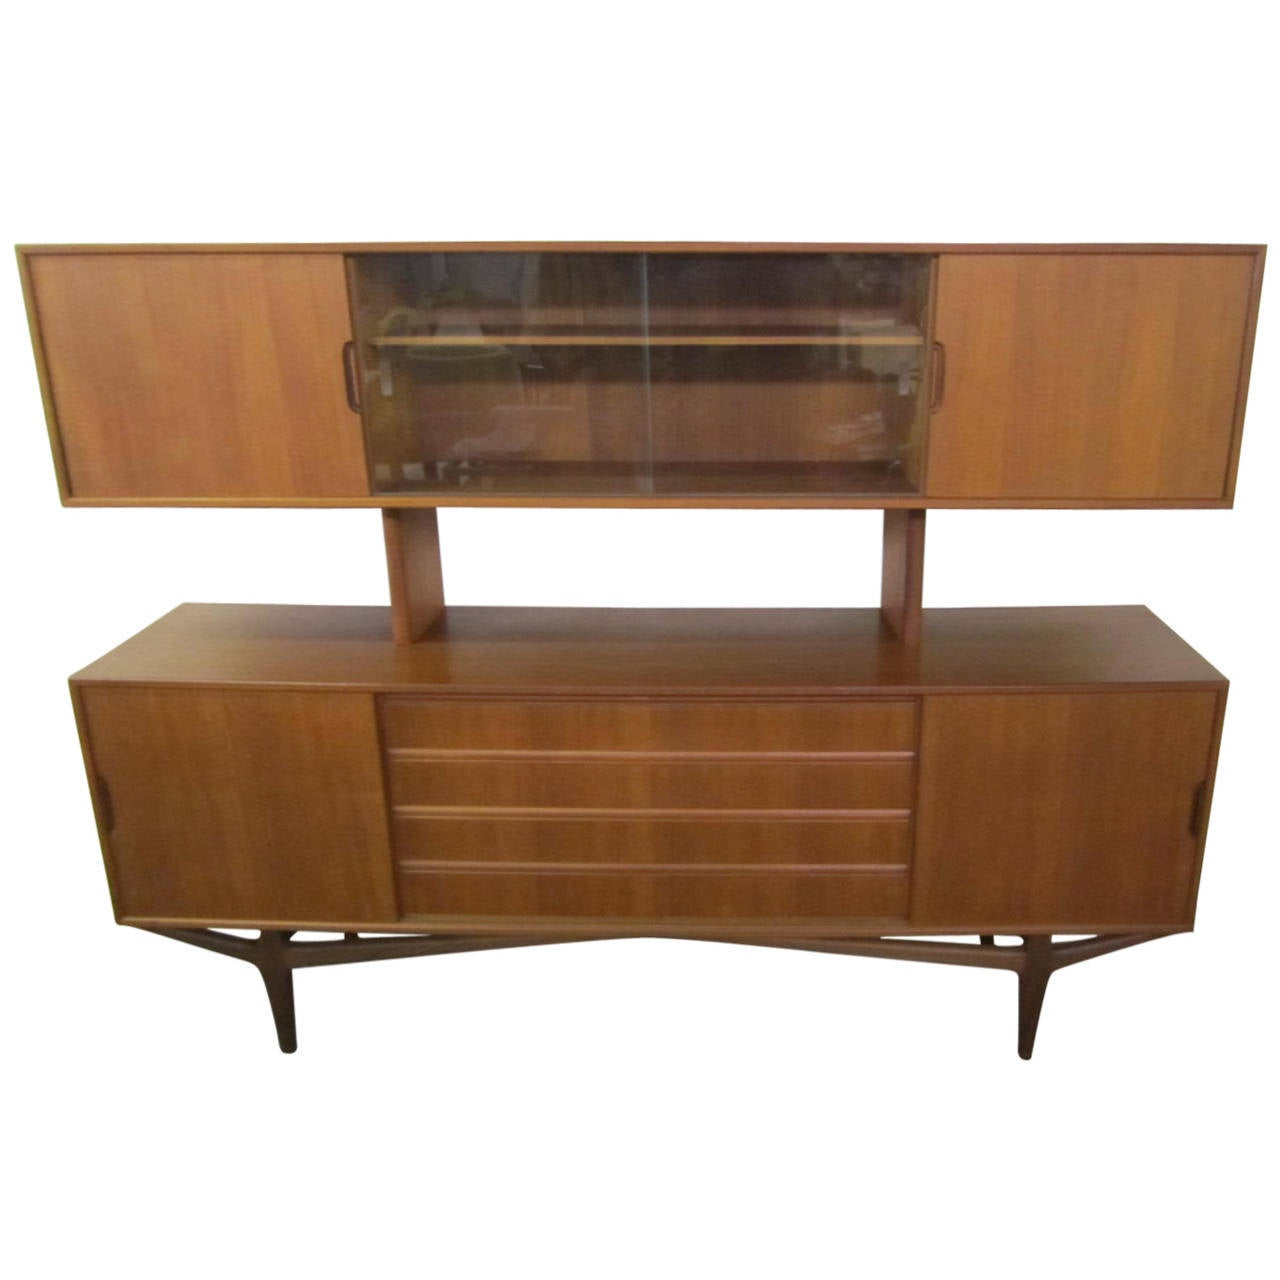 Lovely Teak Danish Credenza with Floating Hutch Room Divider, Unusual Legs